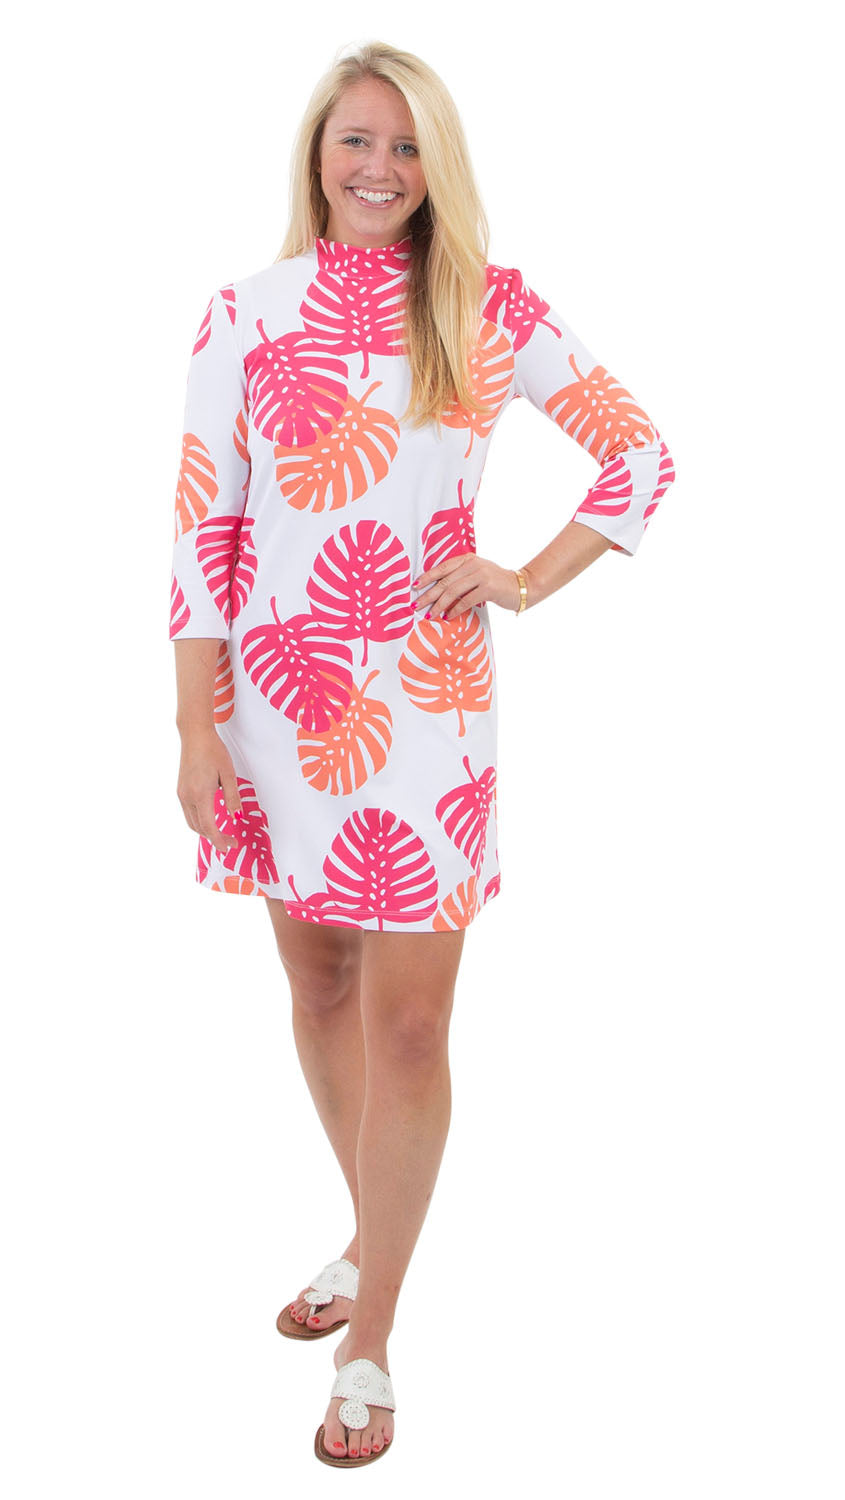 Molly Bow Back 3/4 Sleeve - Hot Pink/Salmon Dancing Palms